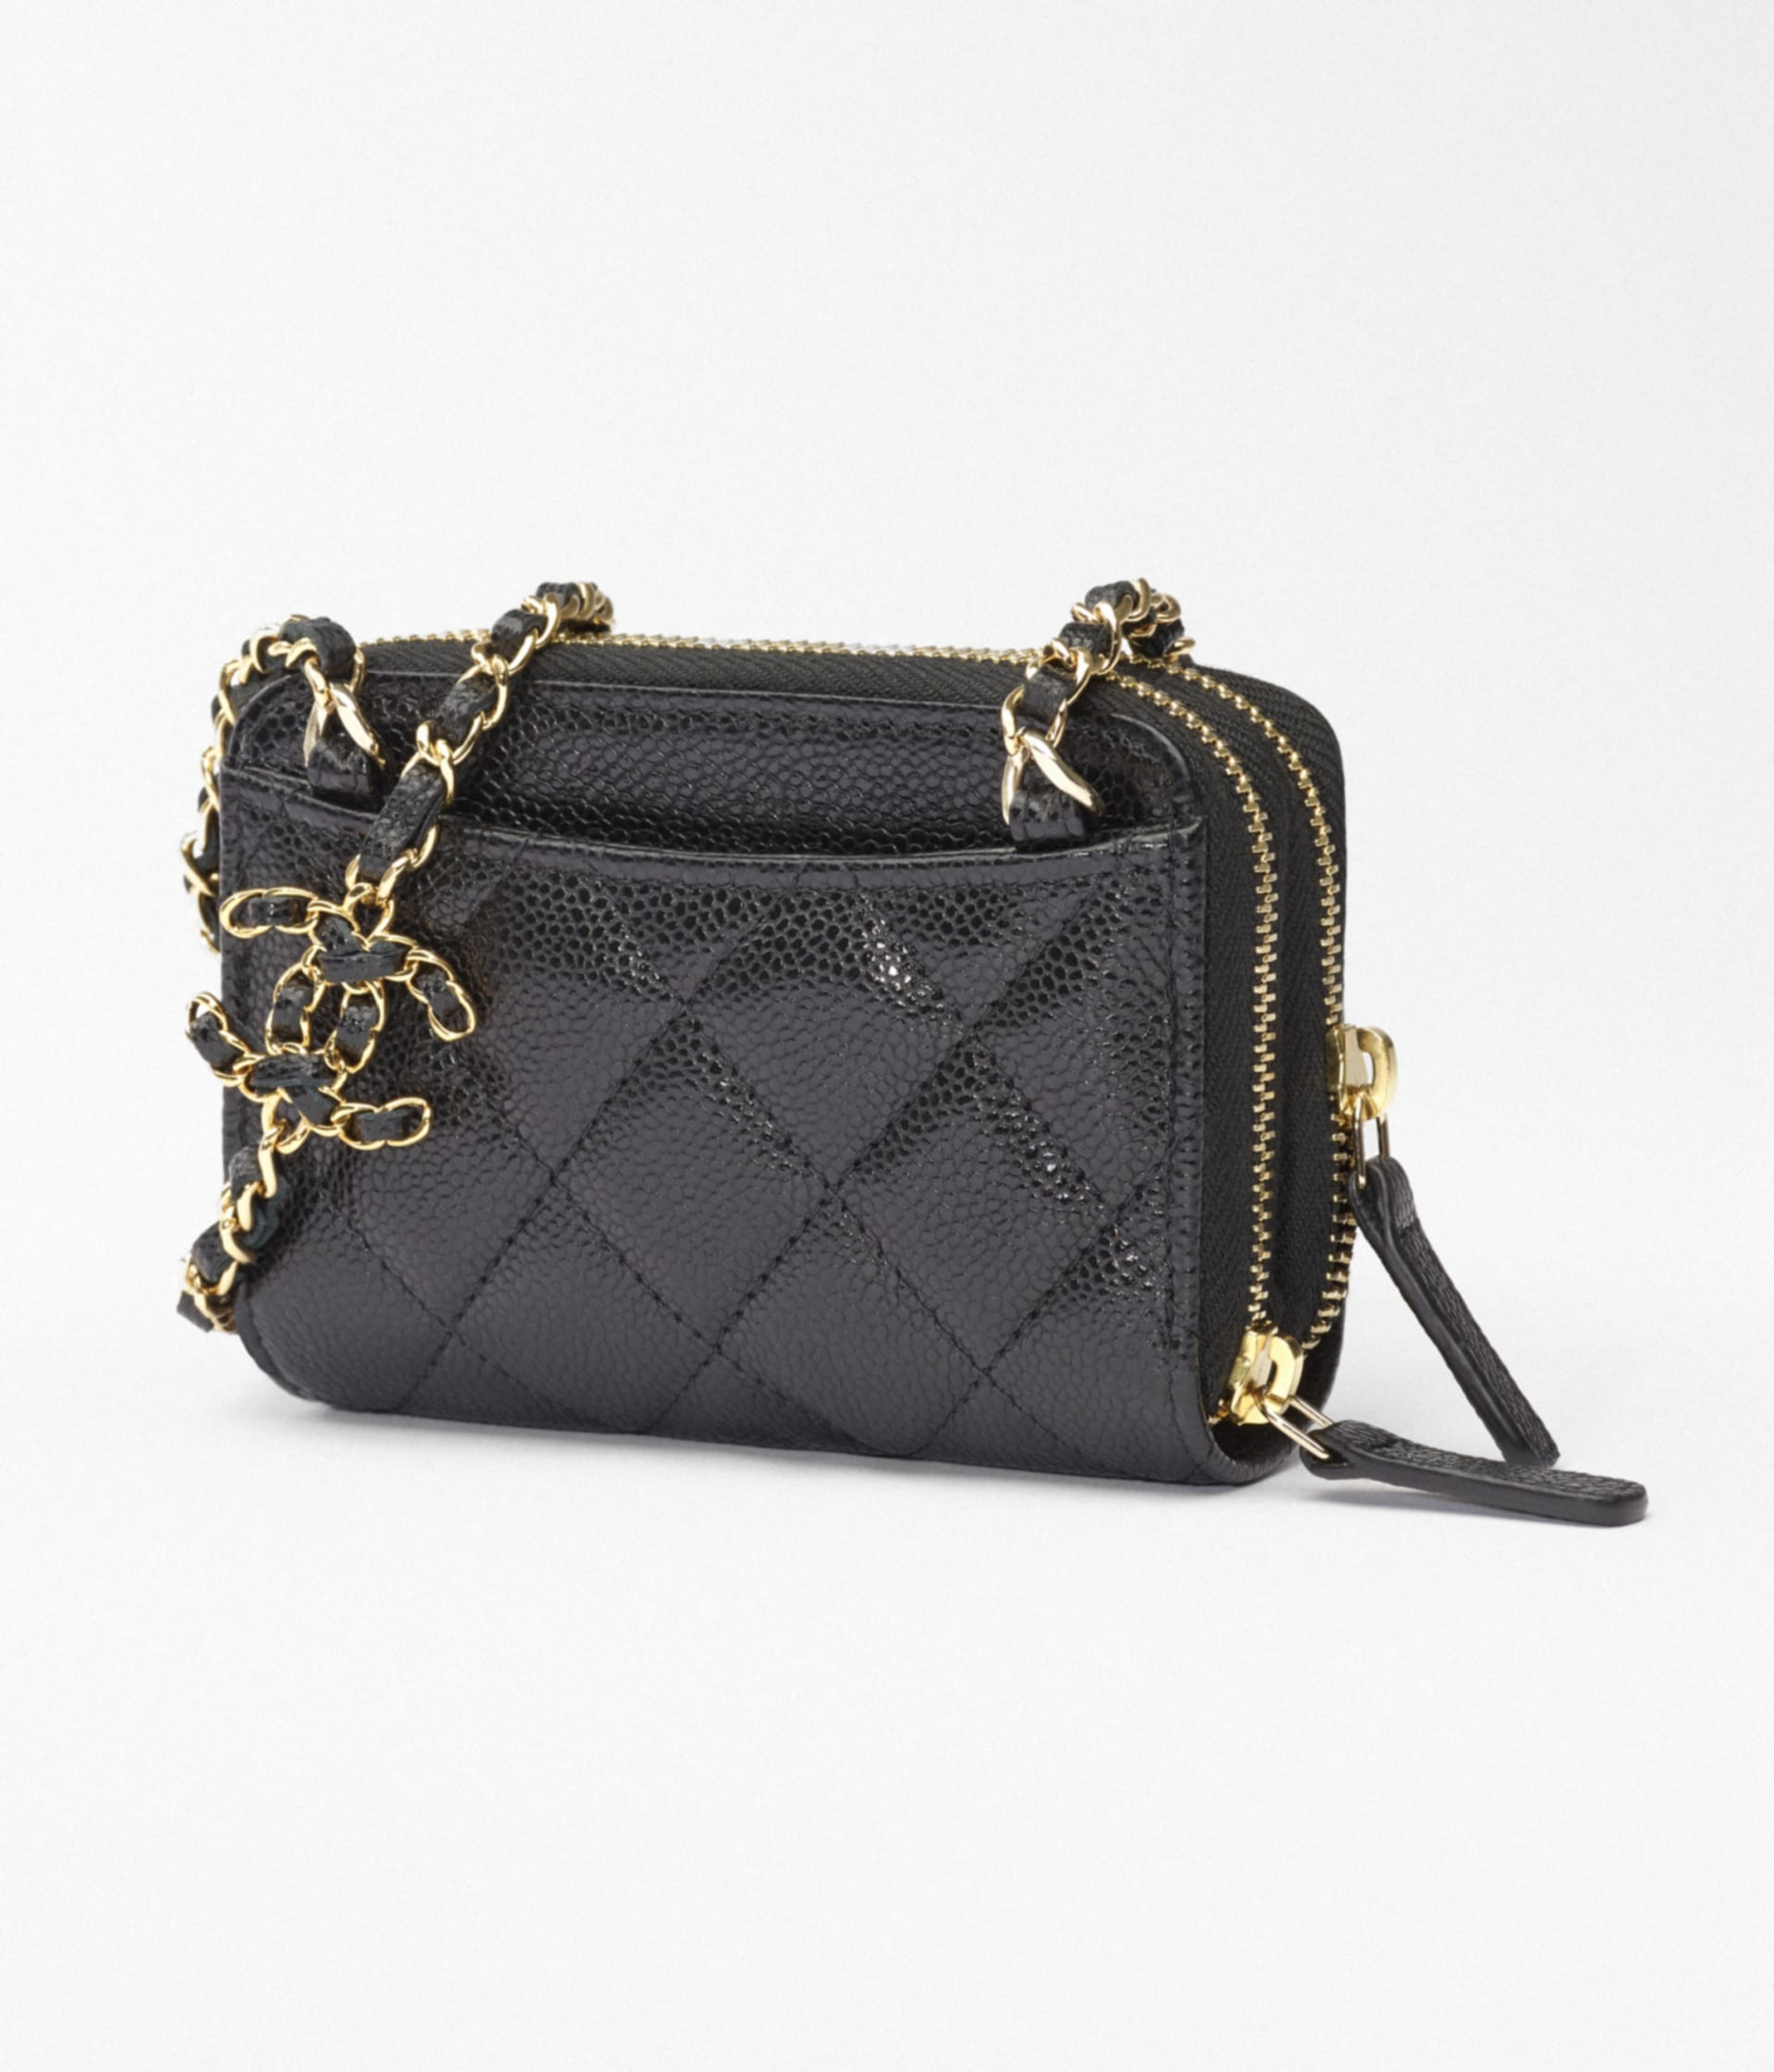 image 4 - Clutch with Chain - Grained Calfskin & Gold-Tone Metal - Black